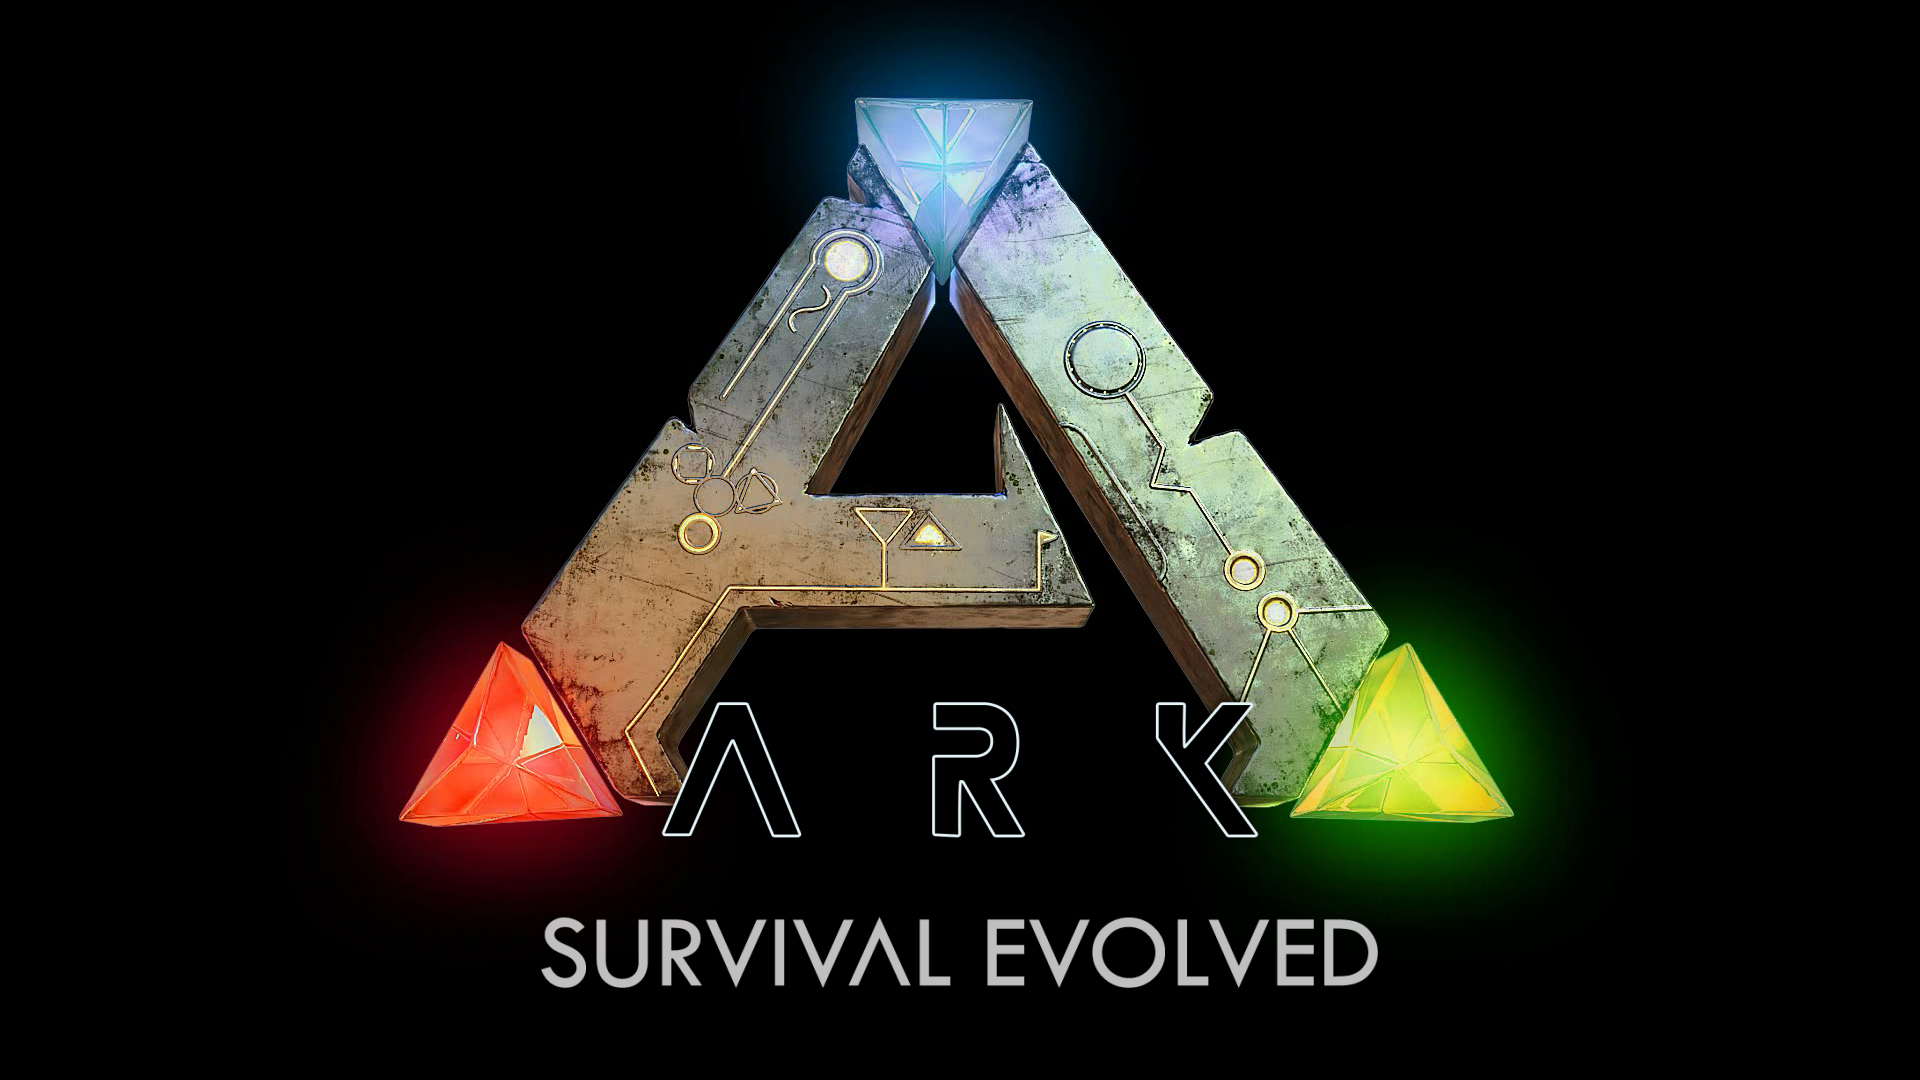 Ark survival evolved commands every big cheat for the aberration ark survival evolved commands every big cheat for the aberration dlc player malvernweather